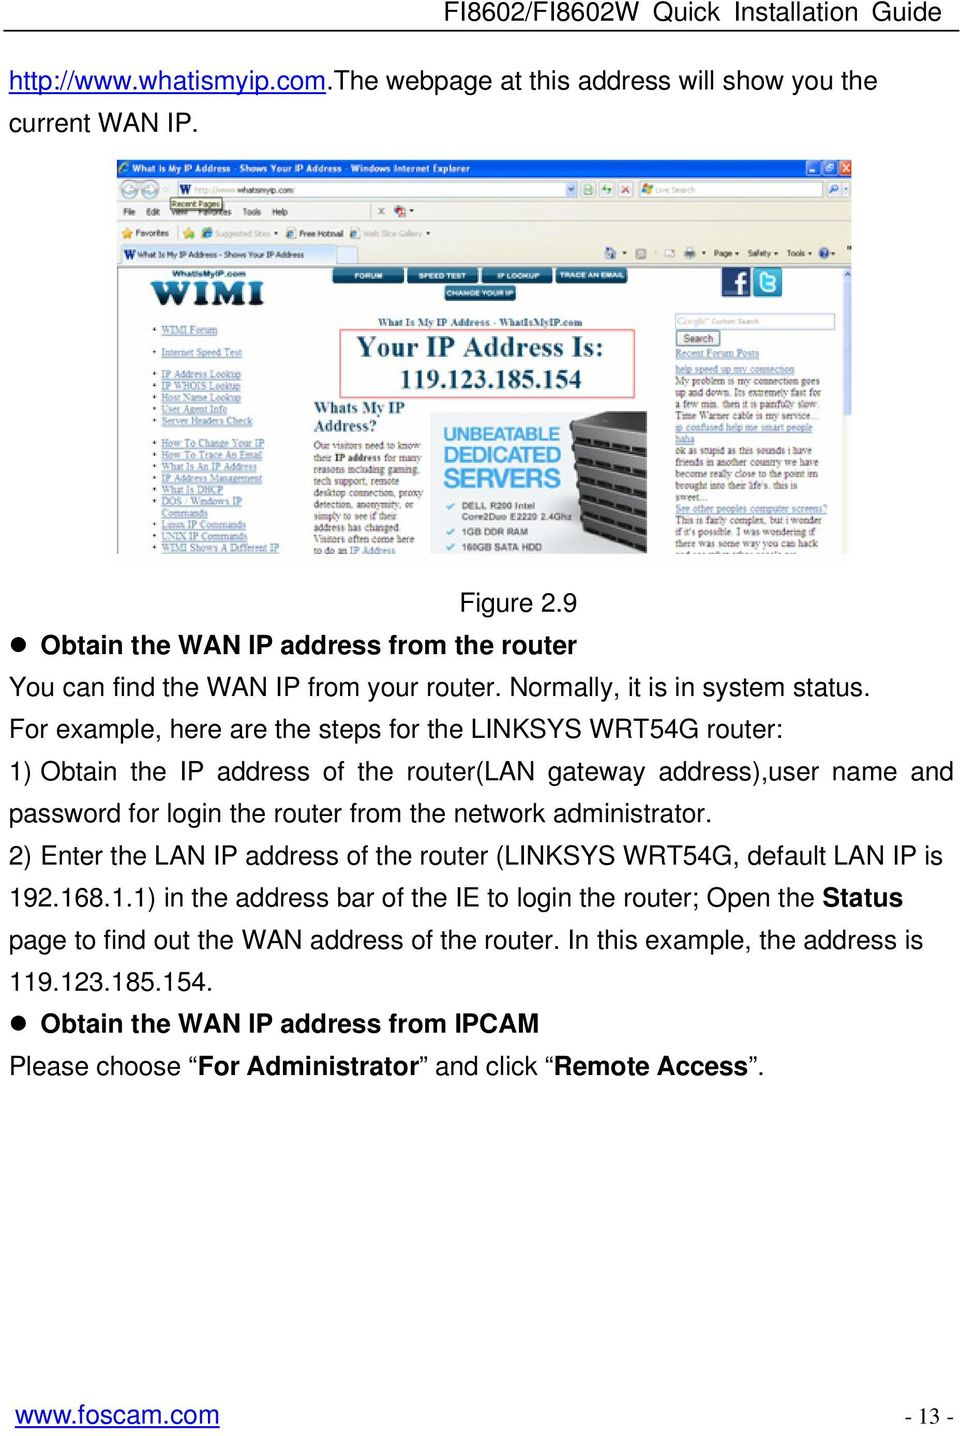 For example, here are the steps for the LINKSYS WRT54G router: 1) Obtain the IP address of the router(lan gateway address),user name and password for login the router from the network